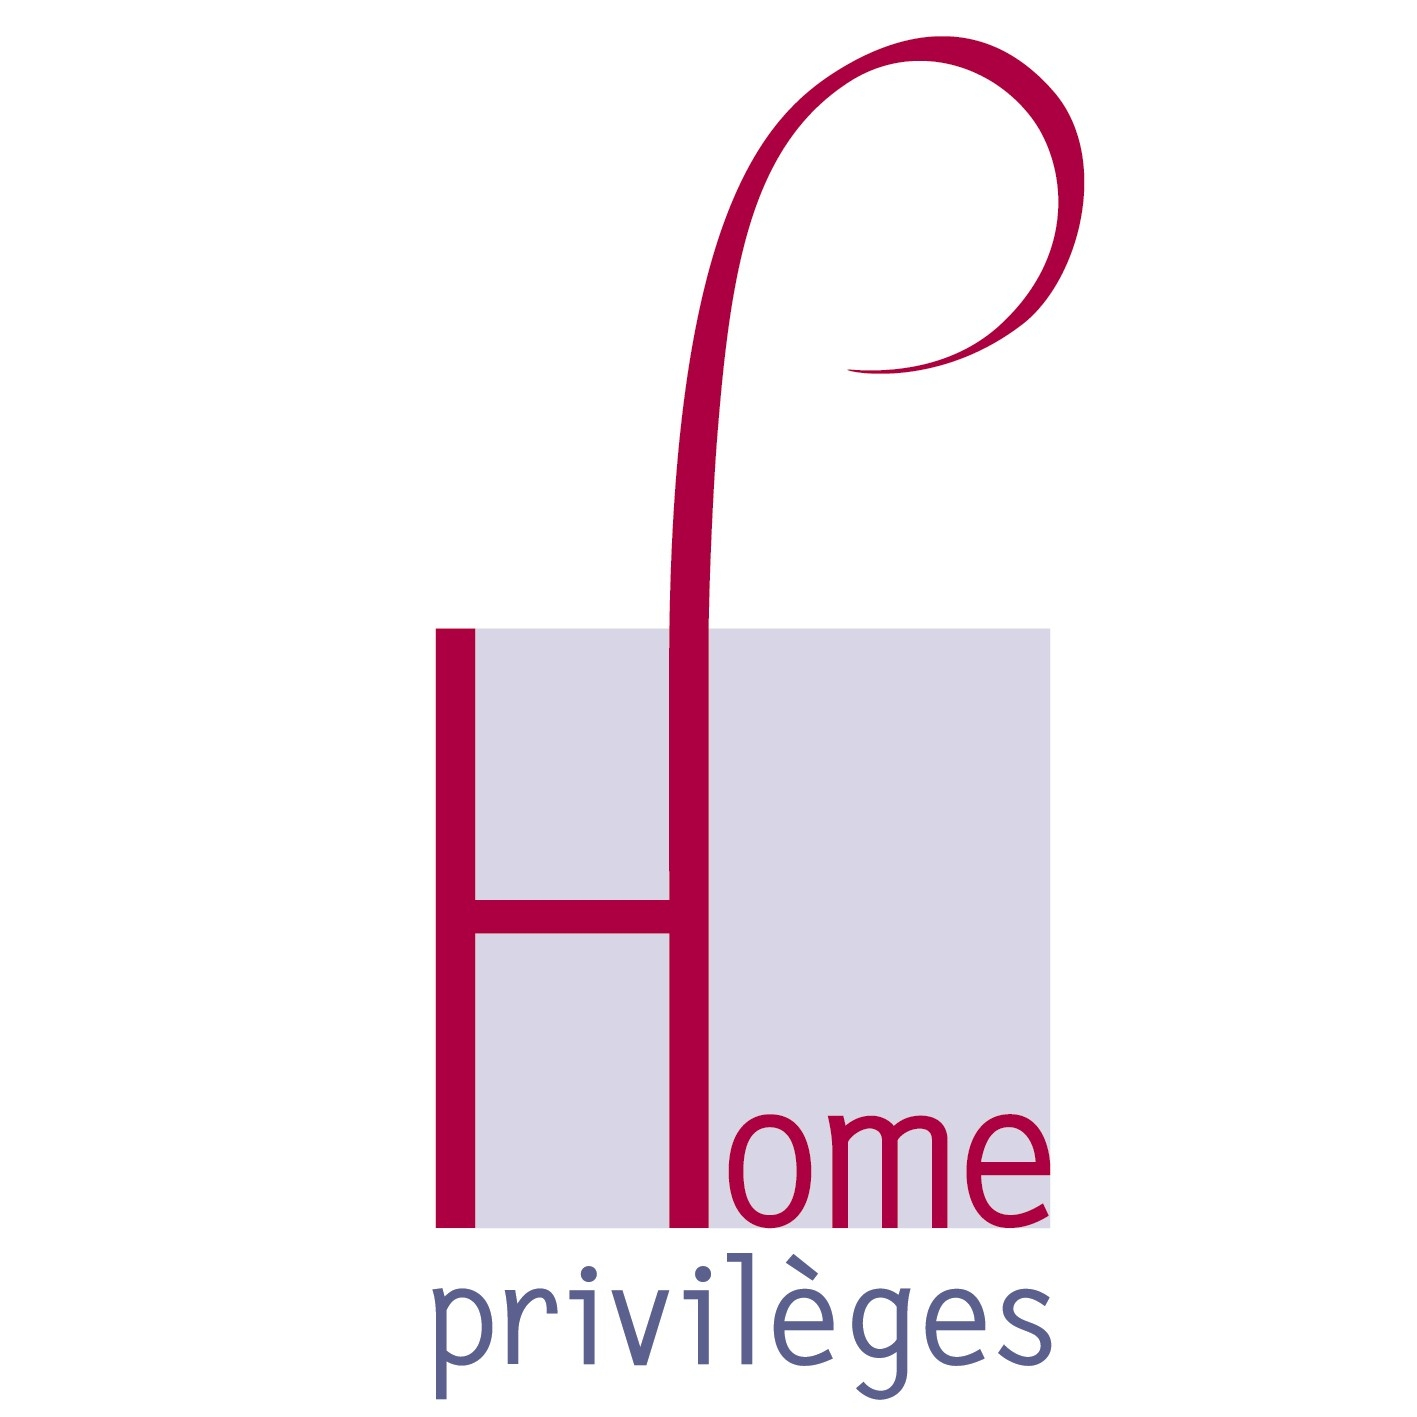 HOME PRIVILEGES